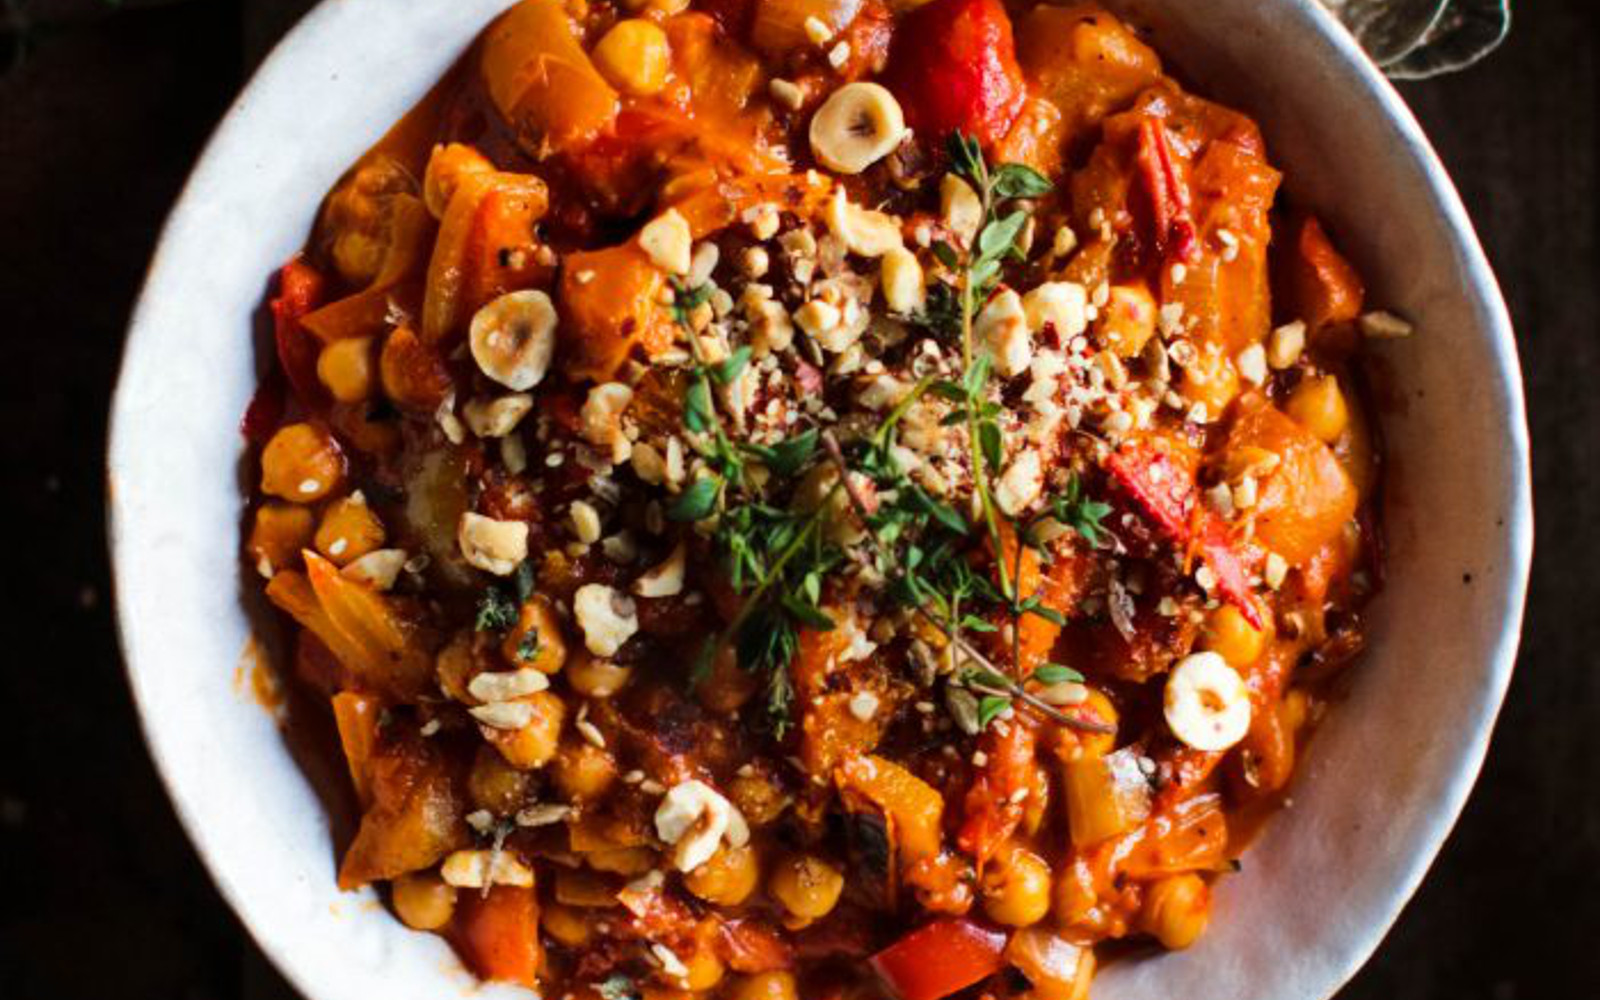 Vegan Gluten-Free Roasted Pepper and Chickpea Stew with Hazelnut Dukka with garnish and nutsd